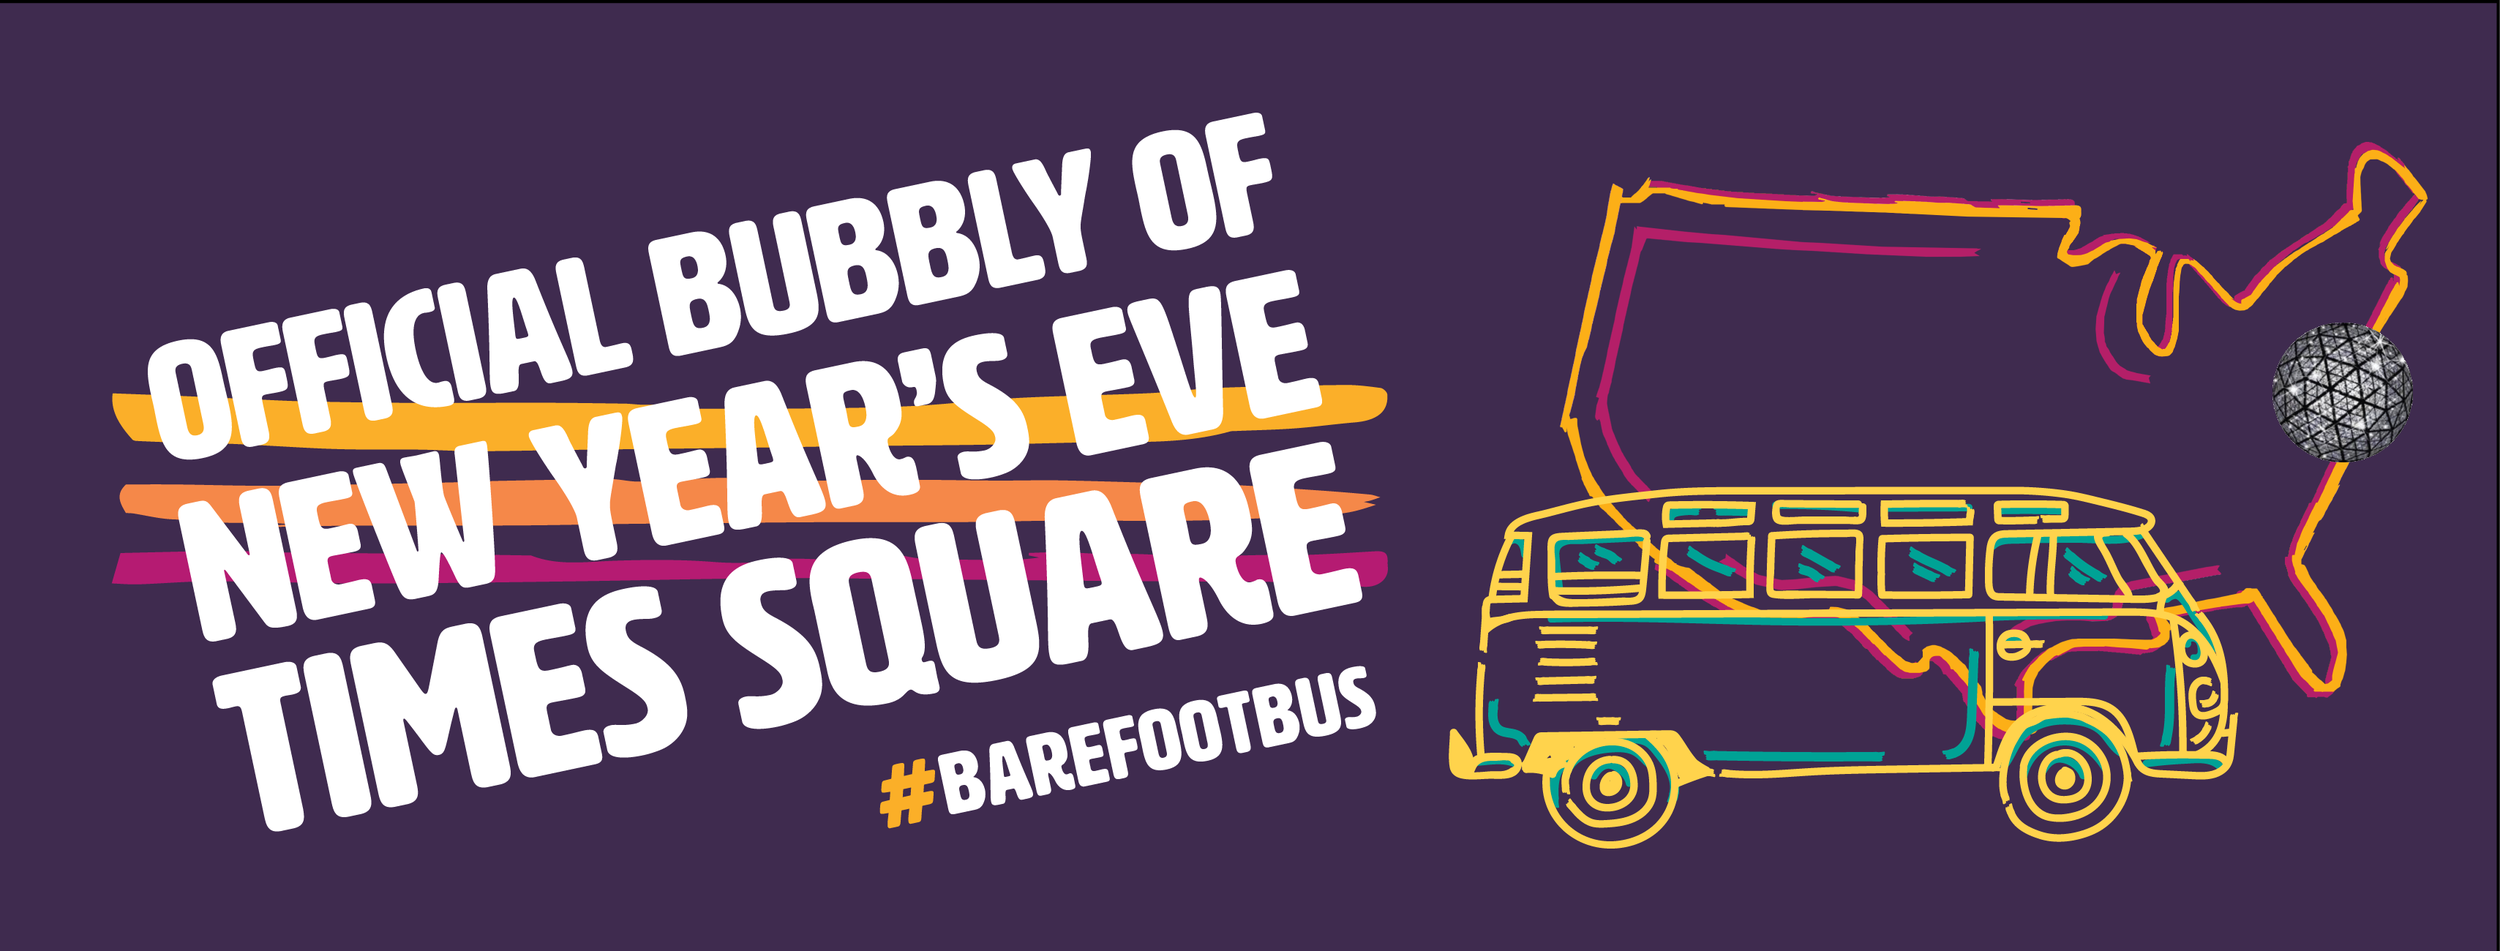 Copy of Barefoot-NYE-CoverPhoto-01.png